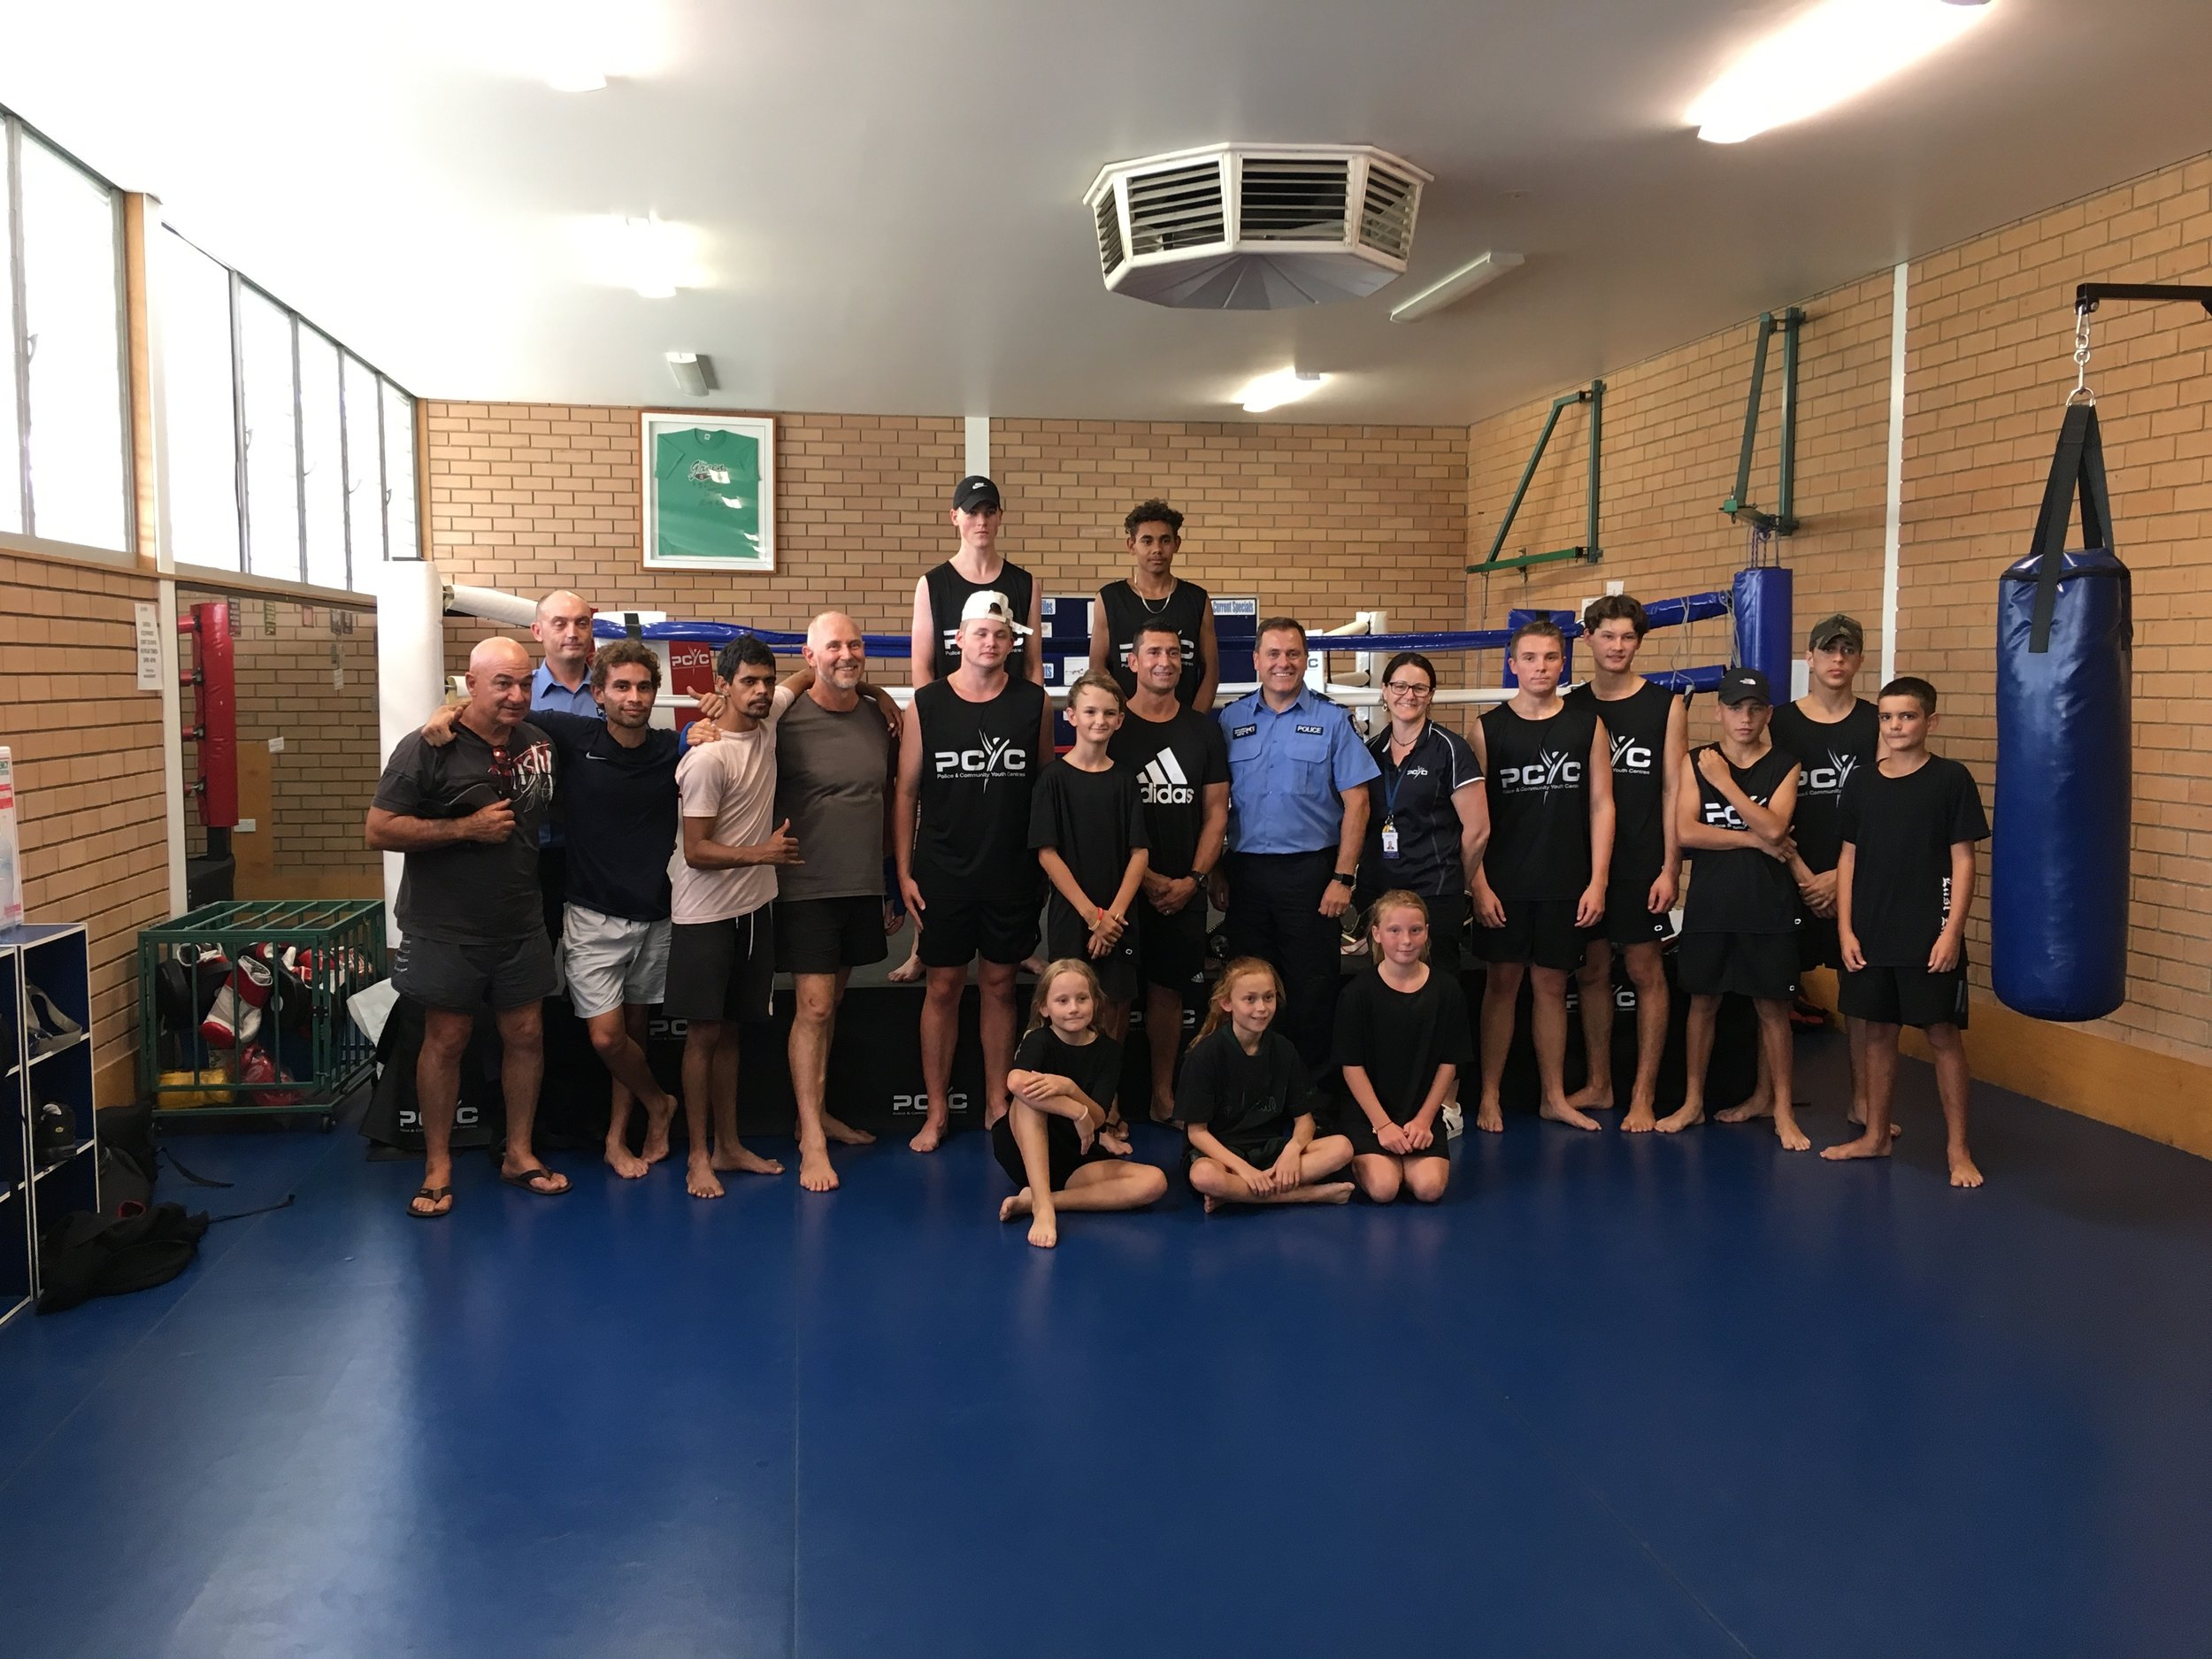 Fremantle Allstars Boxing Club - I run a boxing and fitness program for 12-18 year olds at the Fremantle PCYC in conjunction with the WA Police. Classes are conducted in a supportive and encouraging environment. We welcome fathers and sons and mothers and daughters.